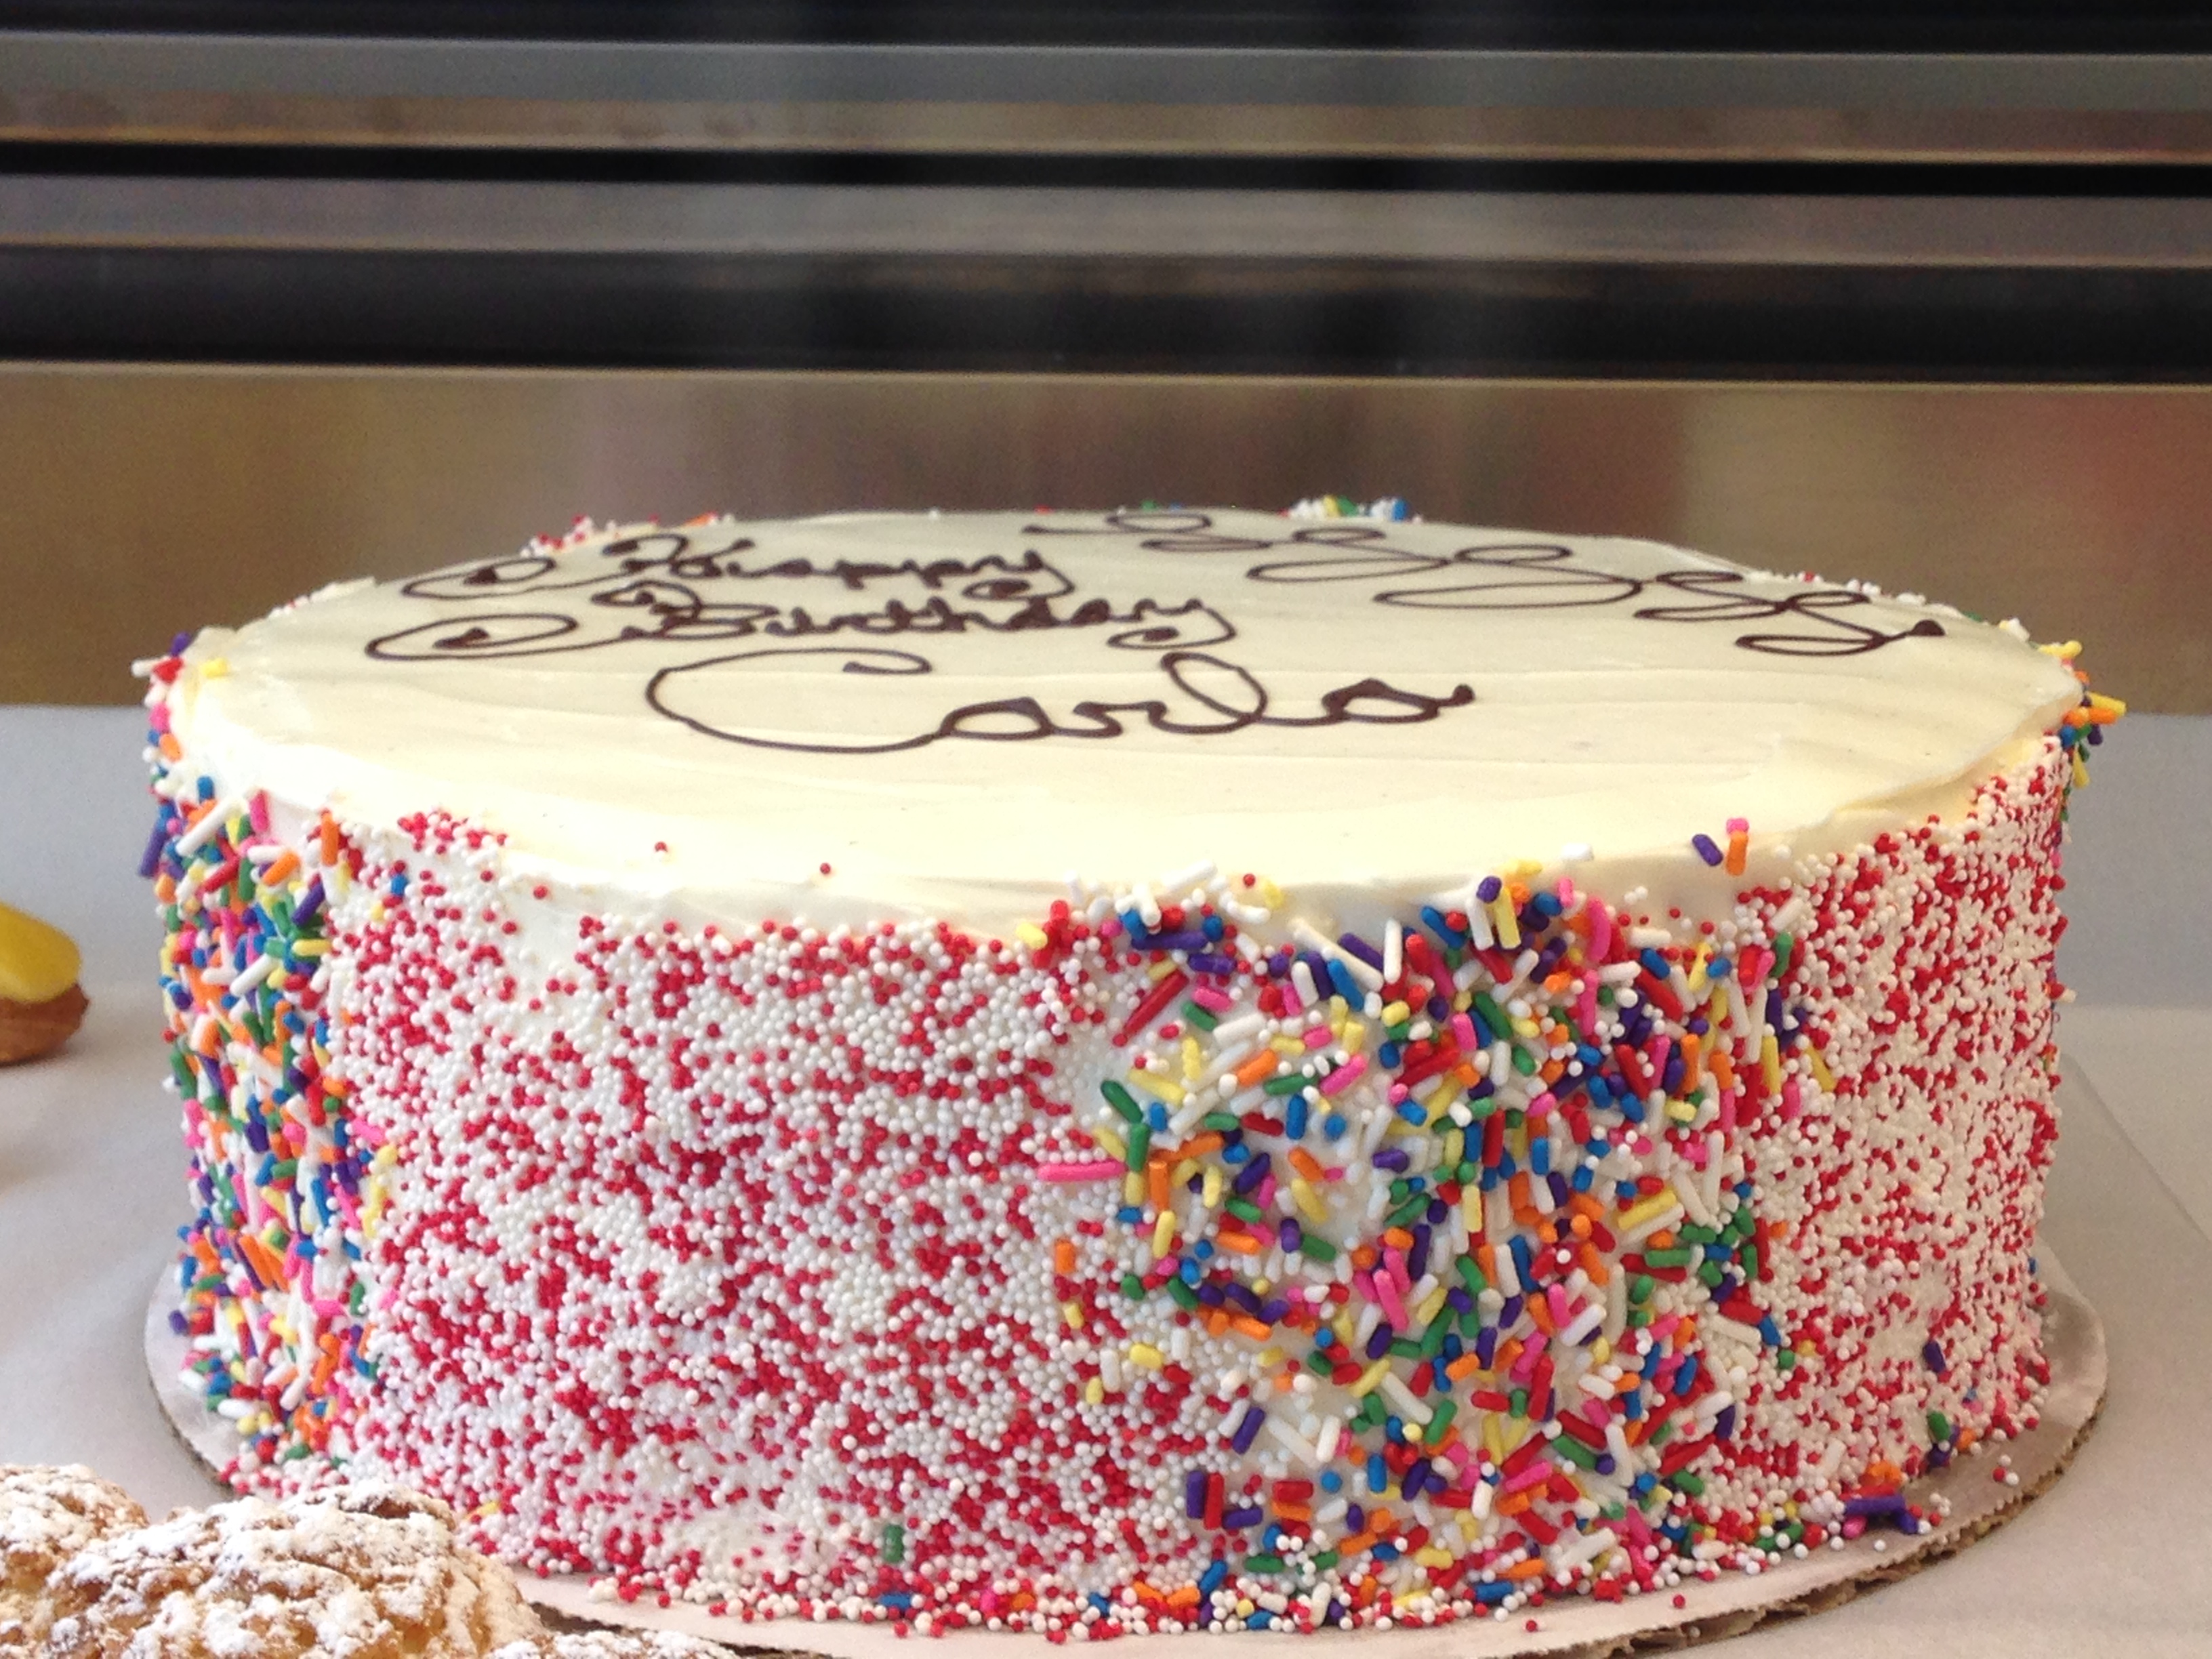 Vanilla and Sprinkles - Gluten free